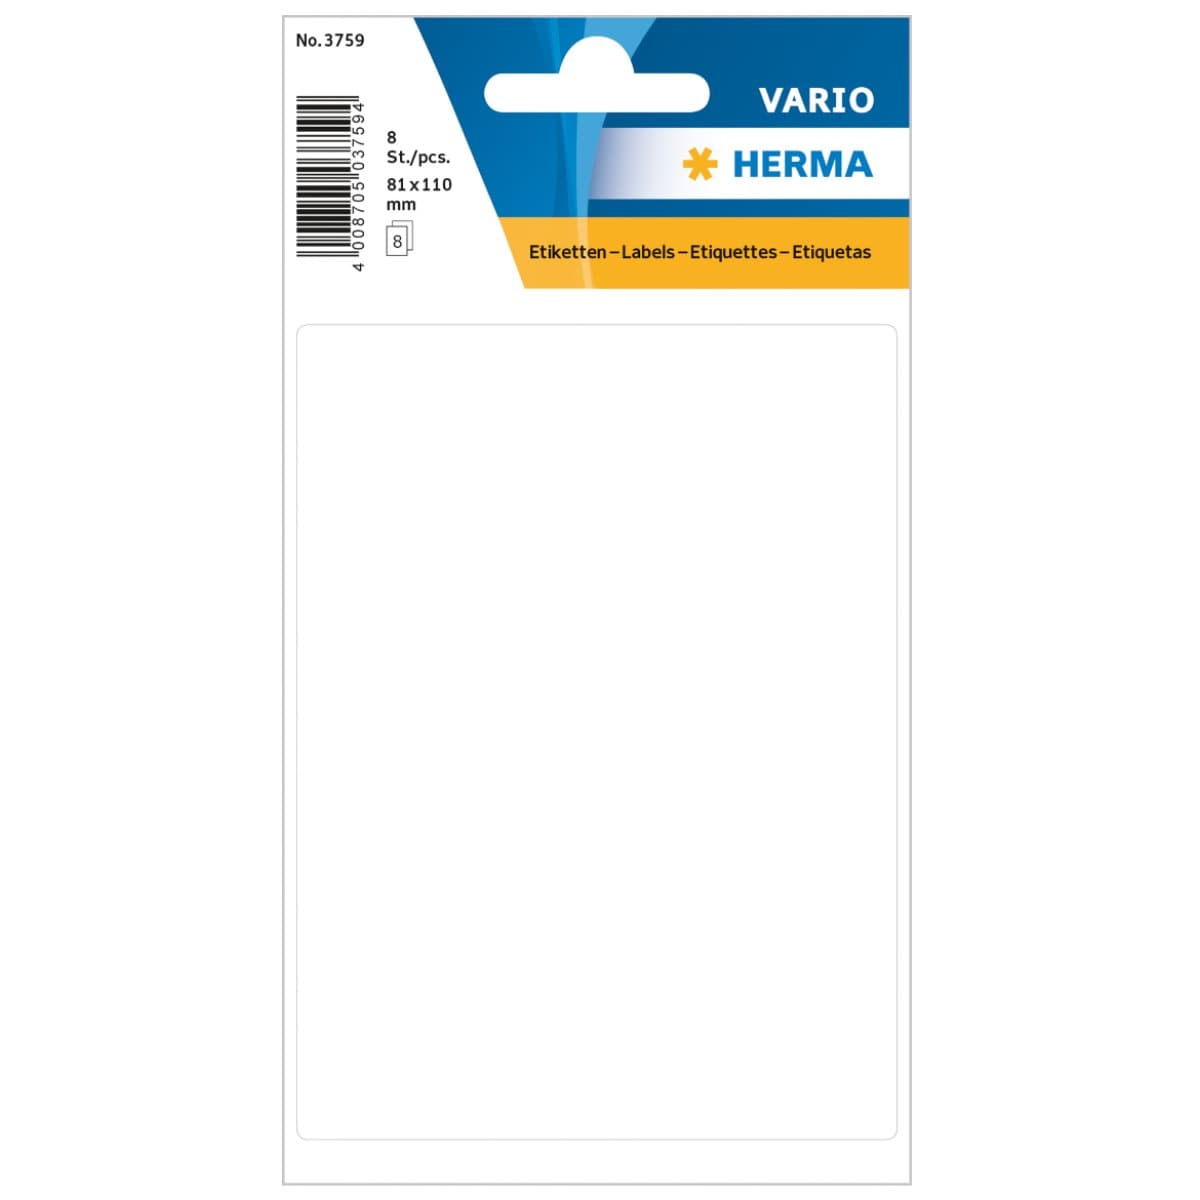 Herma Vario Sticker Labels, 81 x 110 mm, 8/pack, White